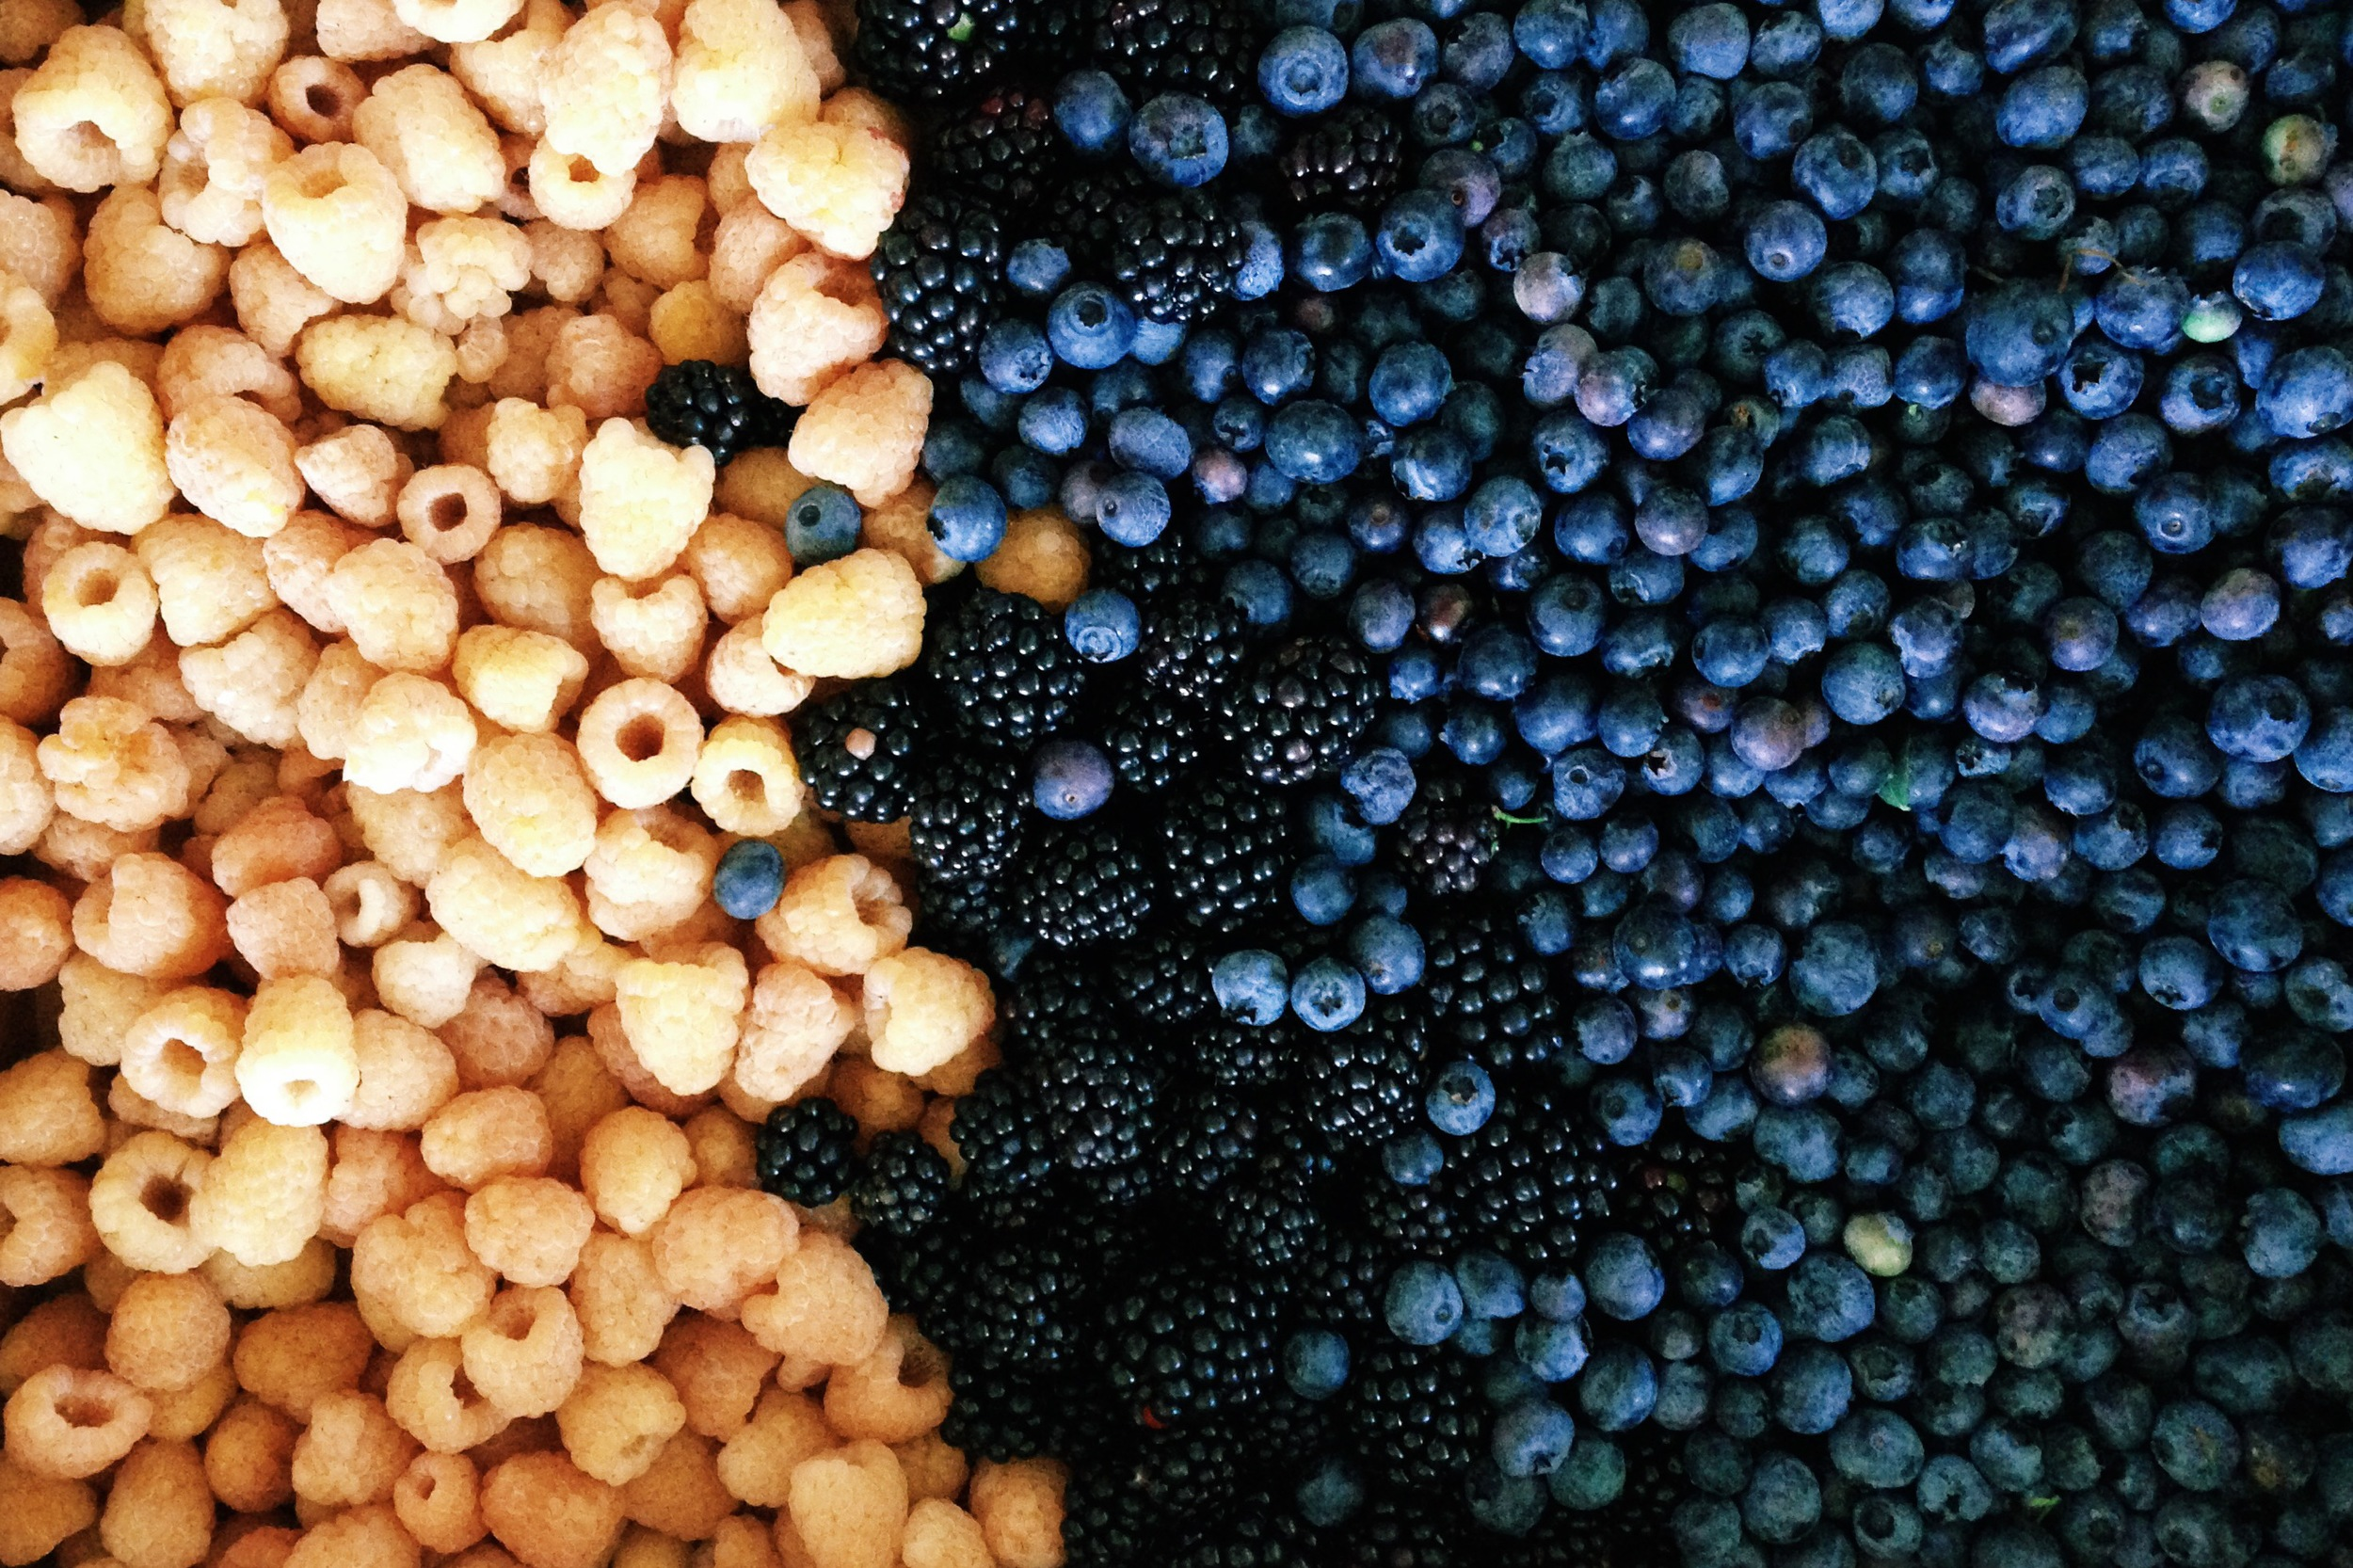 the berries we picked